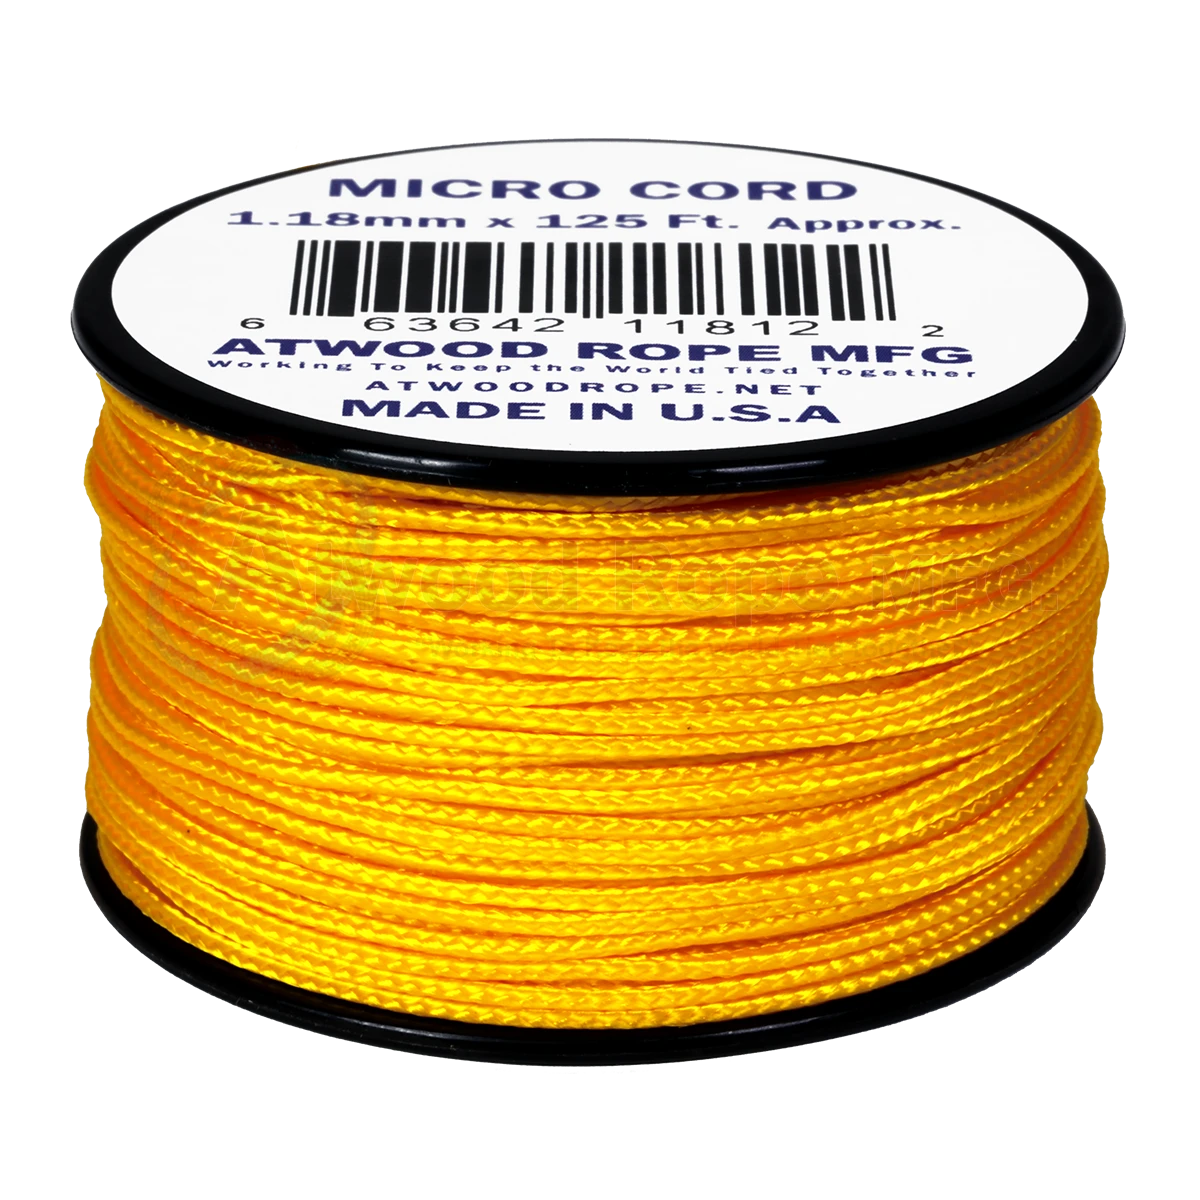 Dây Micro Cord 1.18mm – 100ft – Yellow